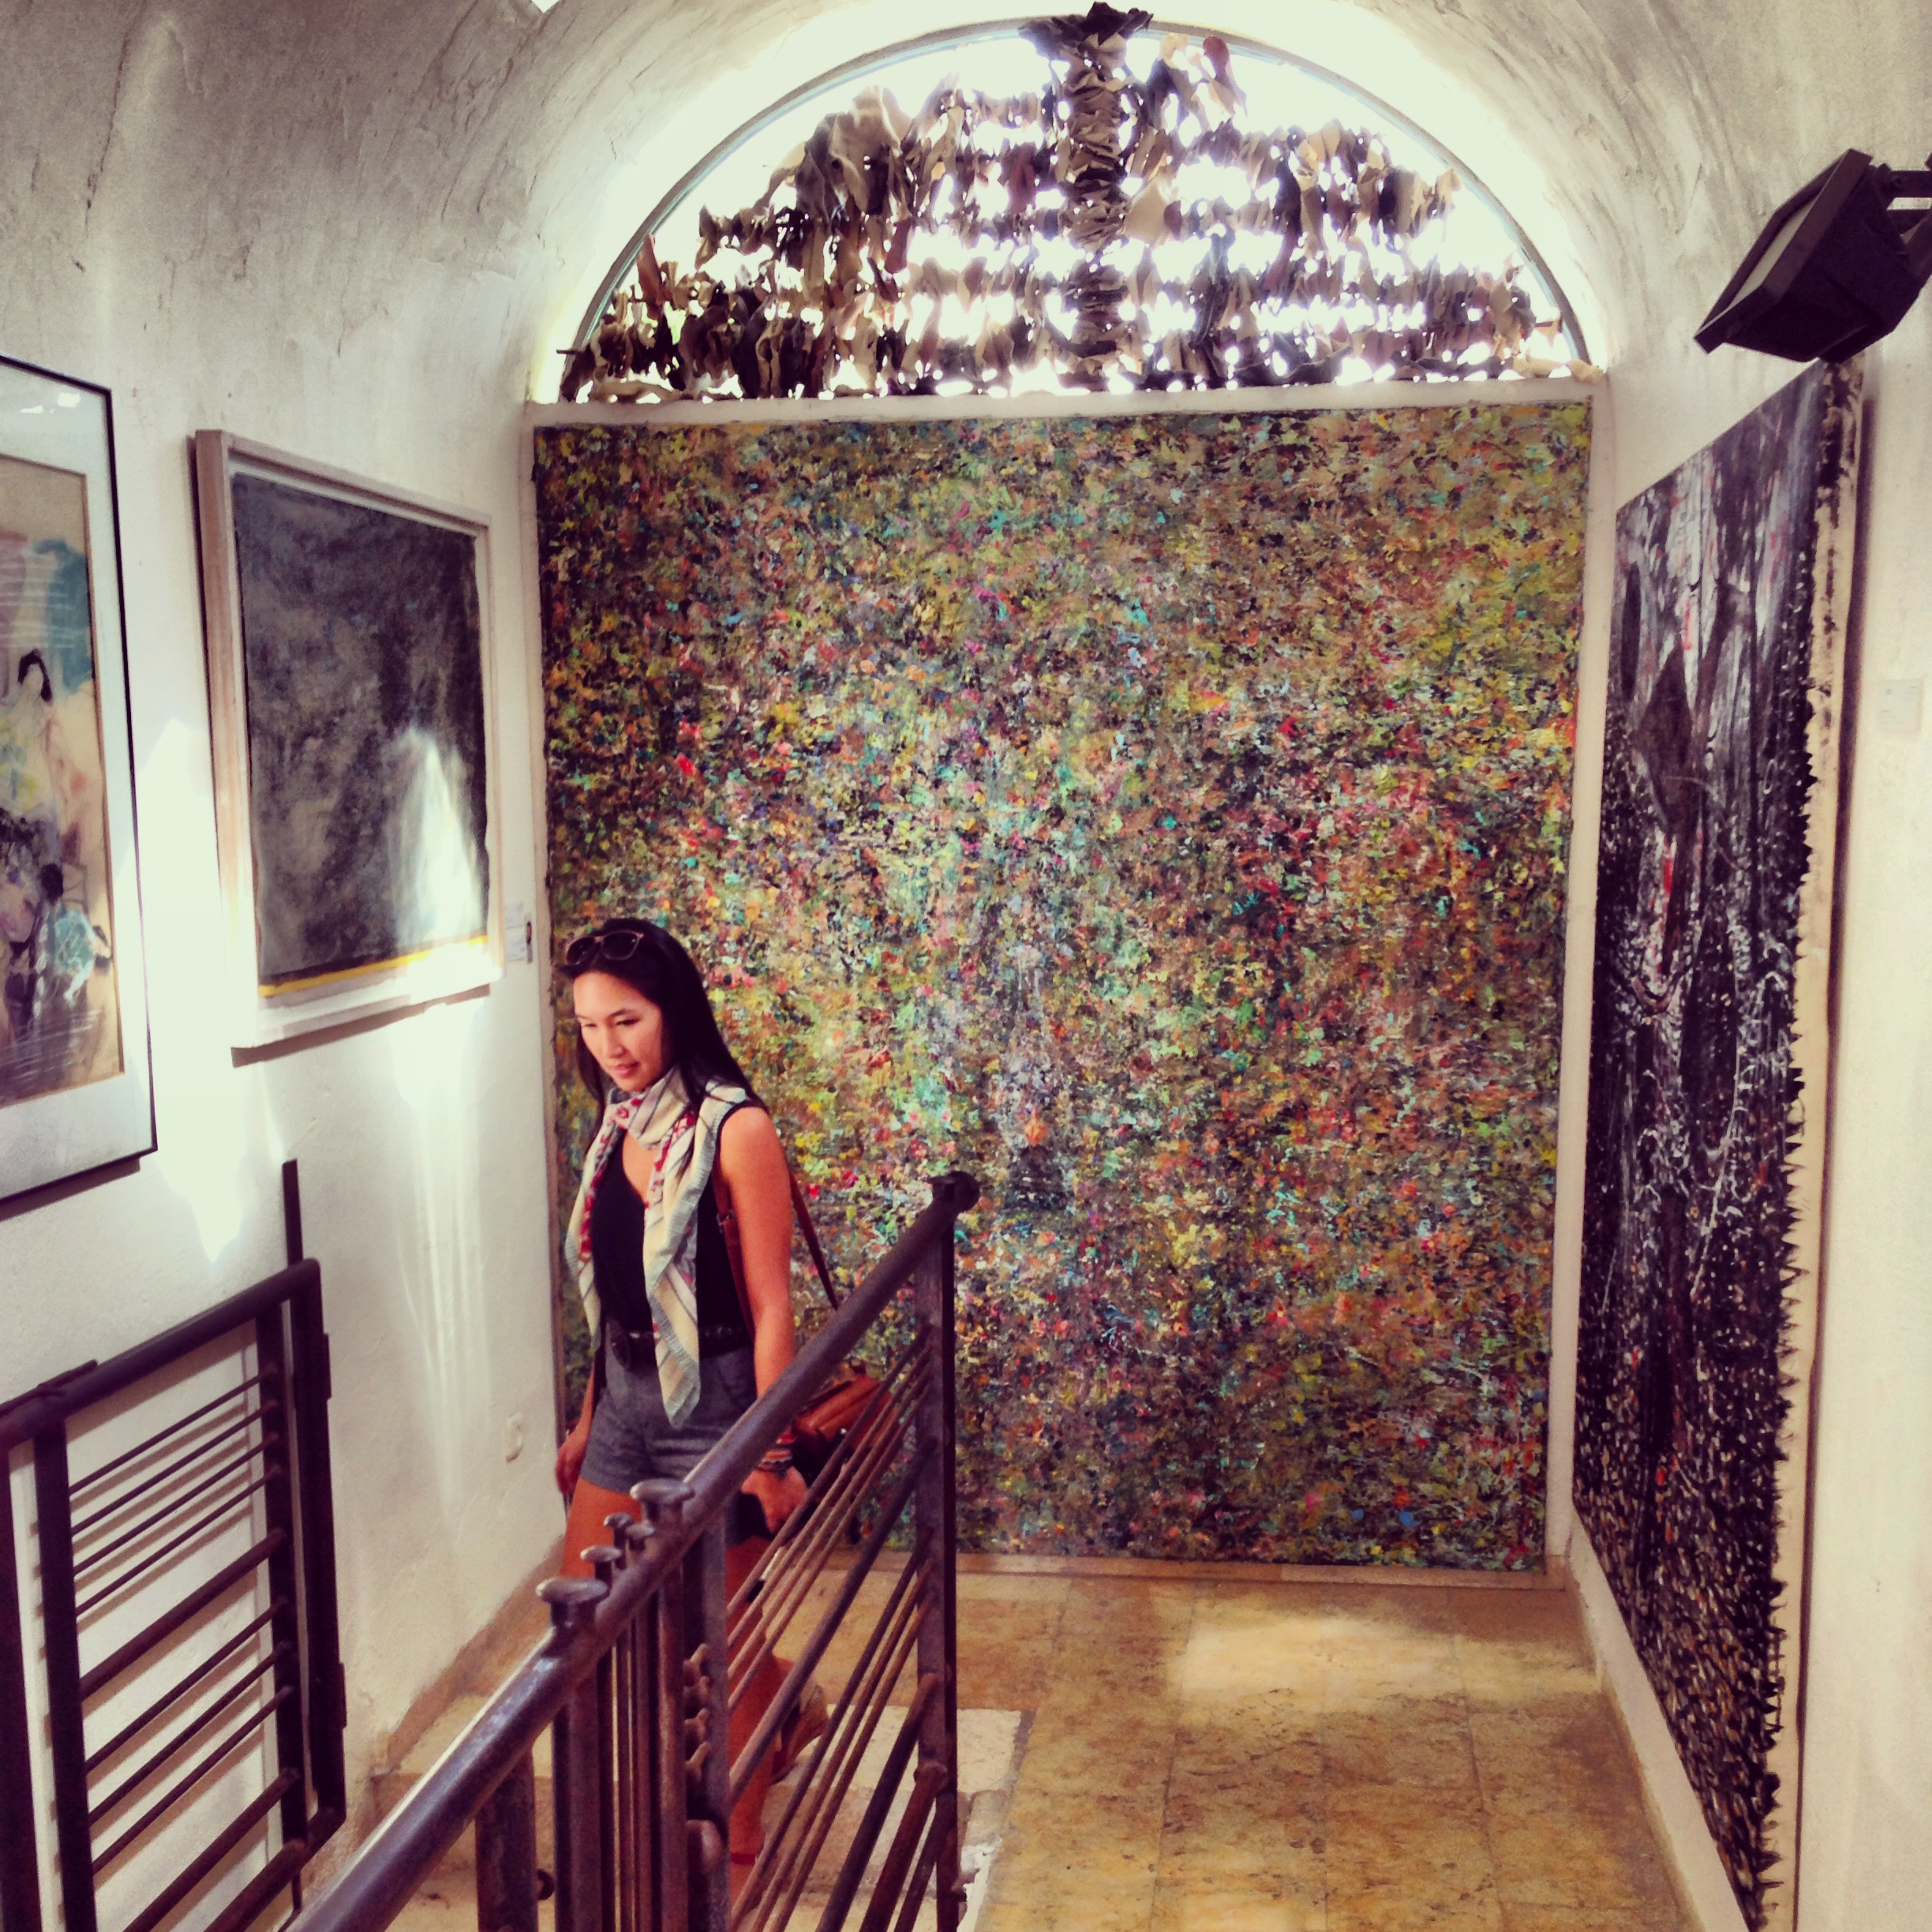 Exploring local artwork at the museum of the celebrated Israeli artist  Ilana Goor  in Jaffa.